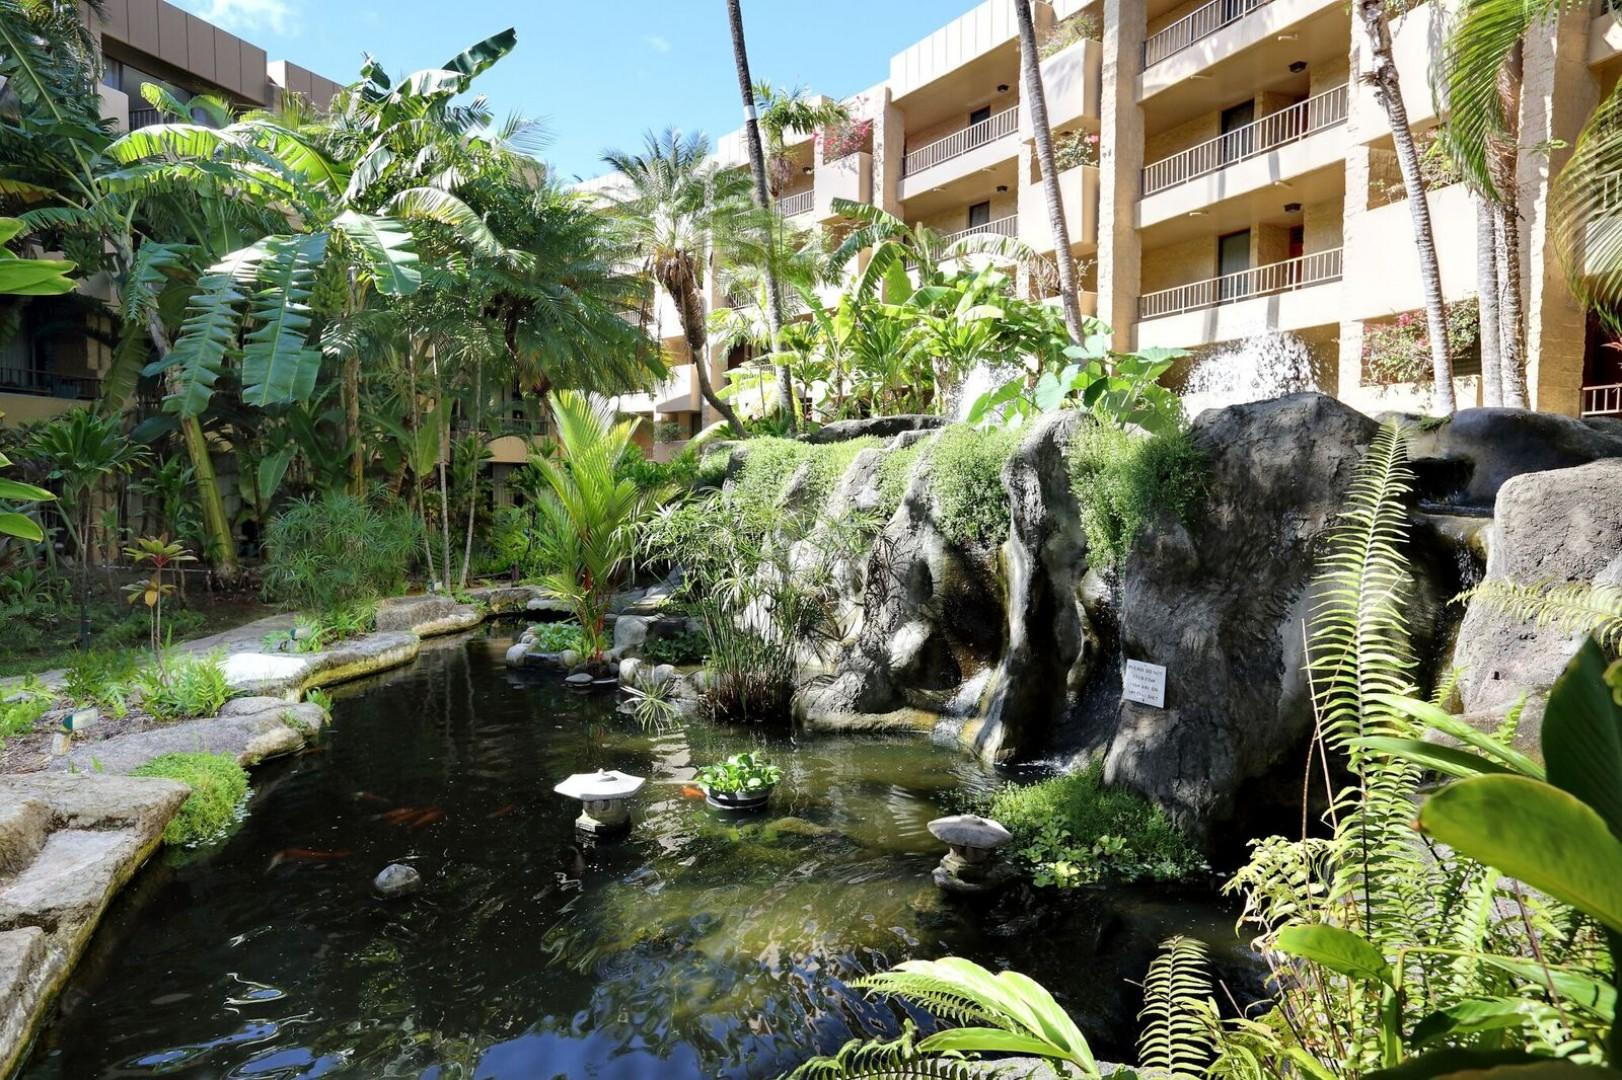 Koi Ponds and Lush Gardens directly off your lanai